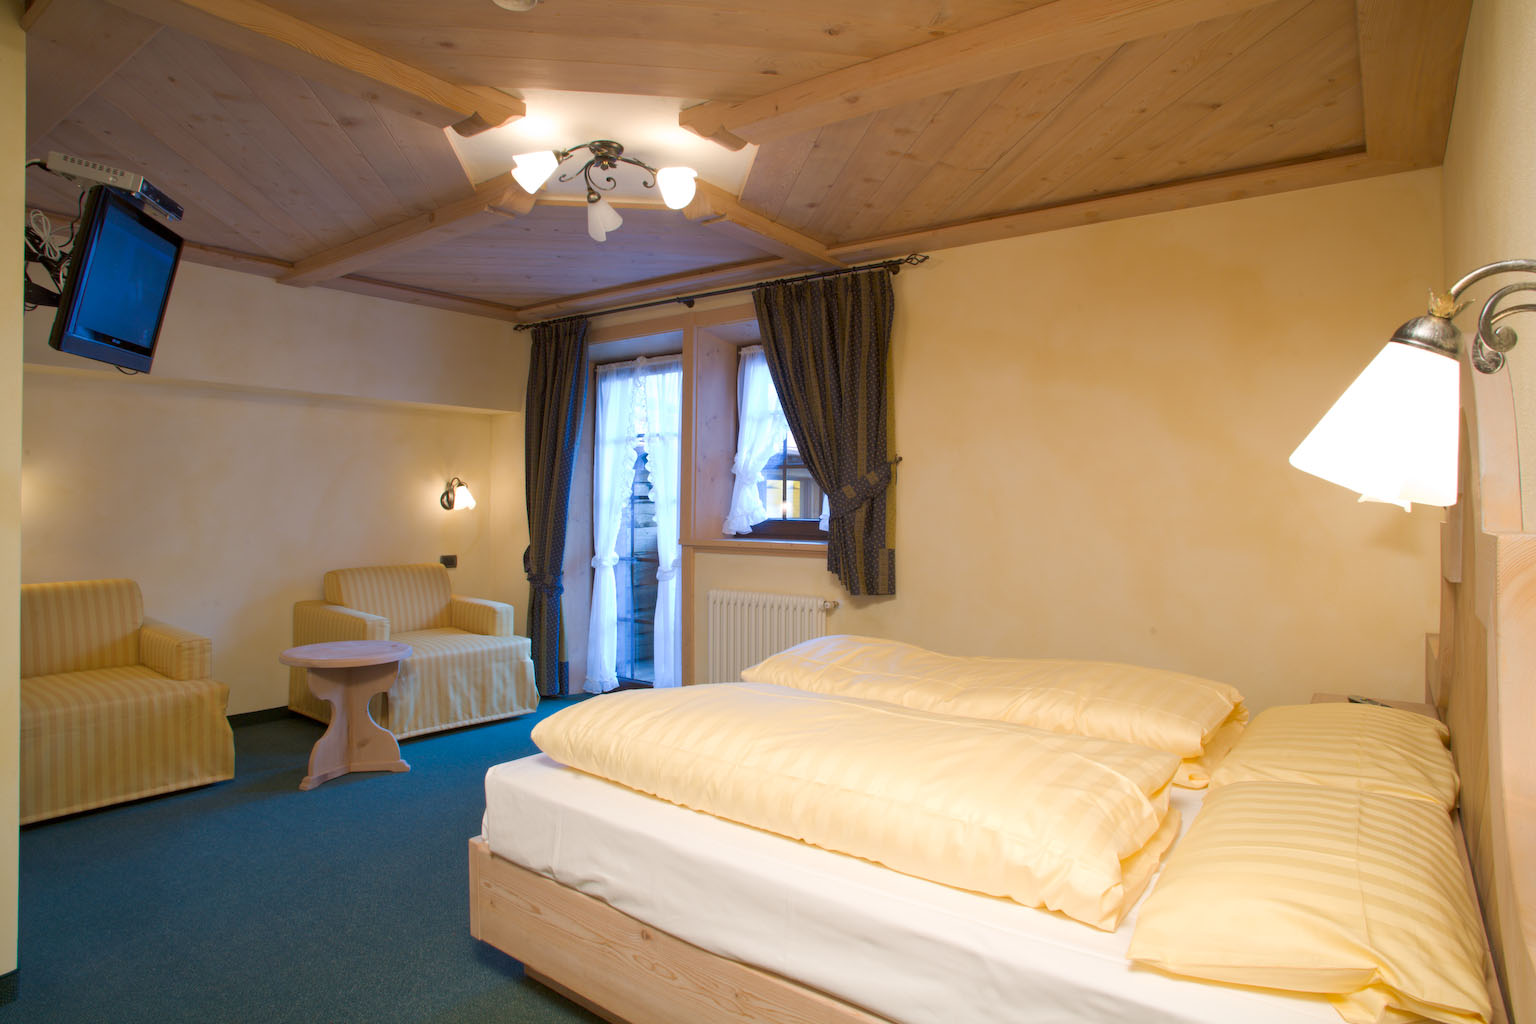 Hotel Capriolo - Via Borch, 96 - Room - Suite 1